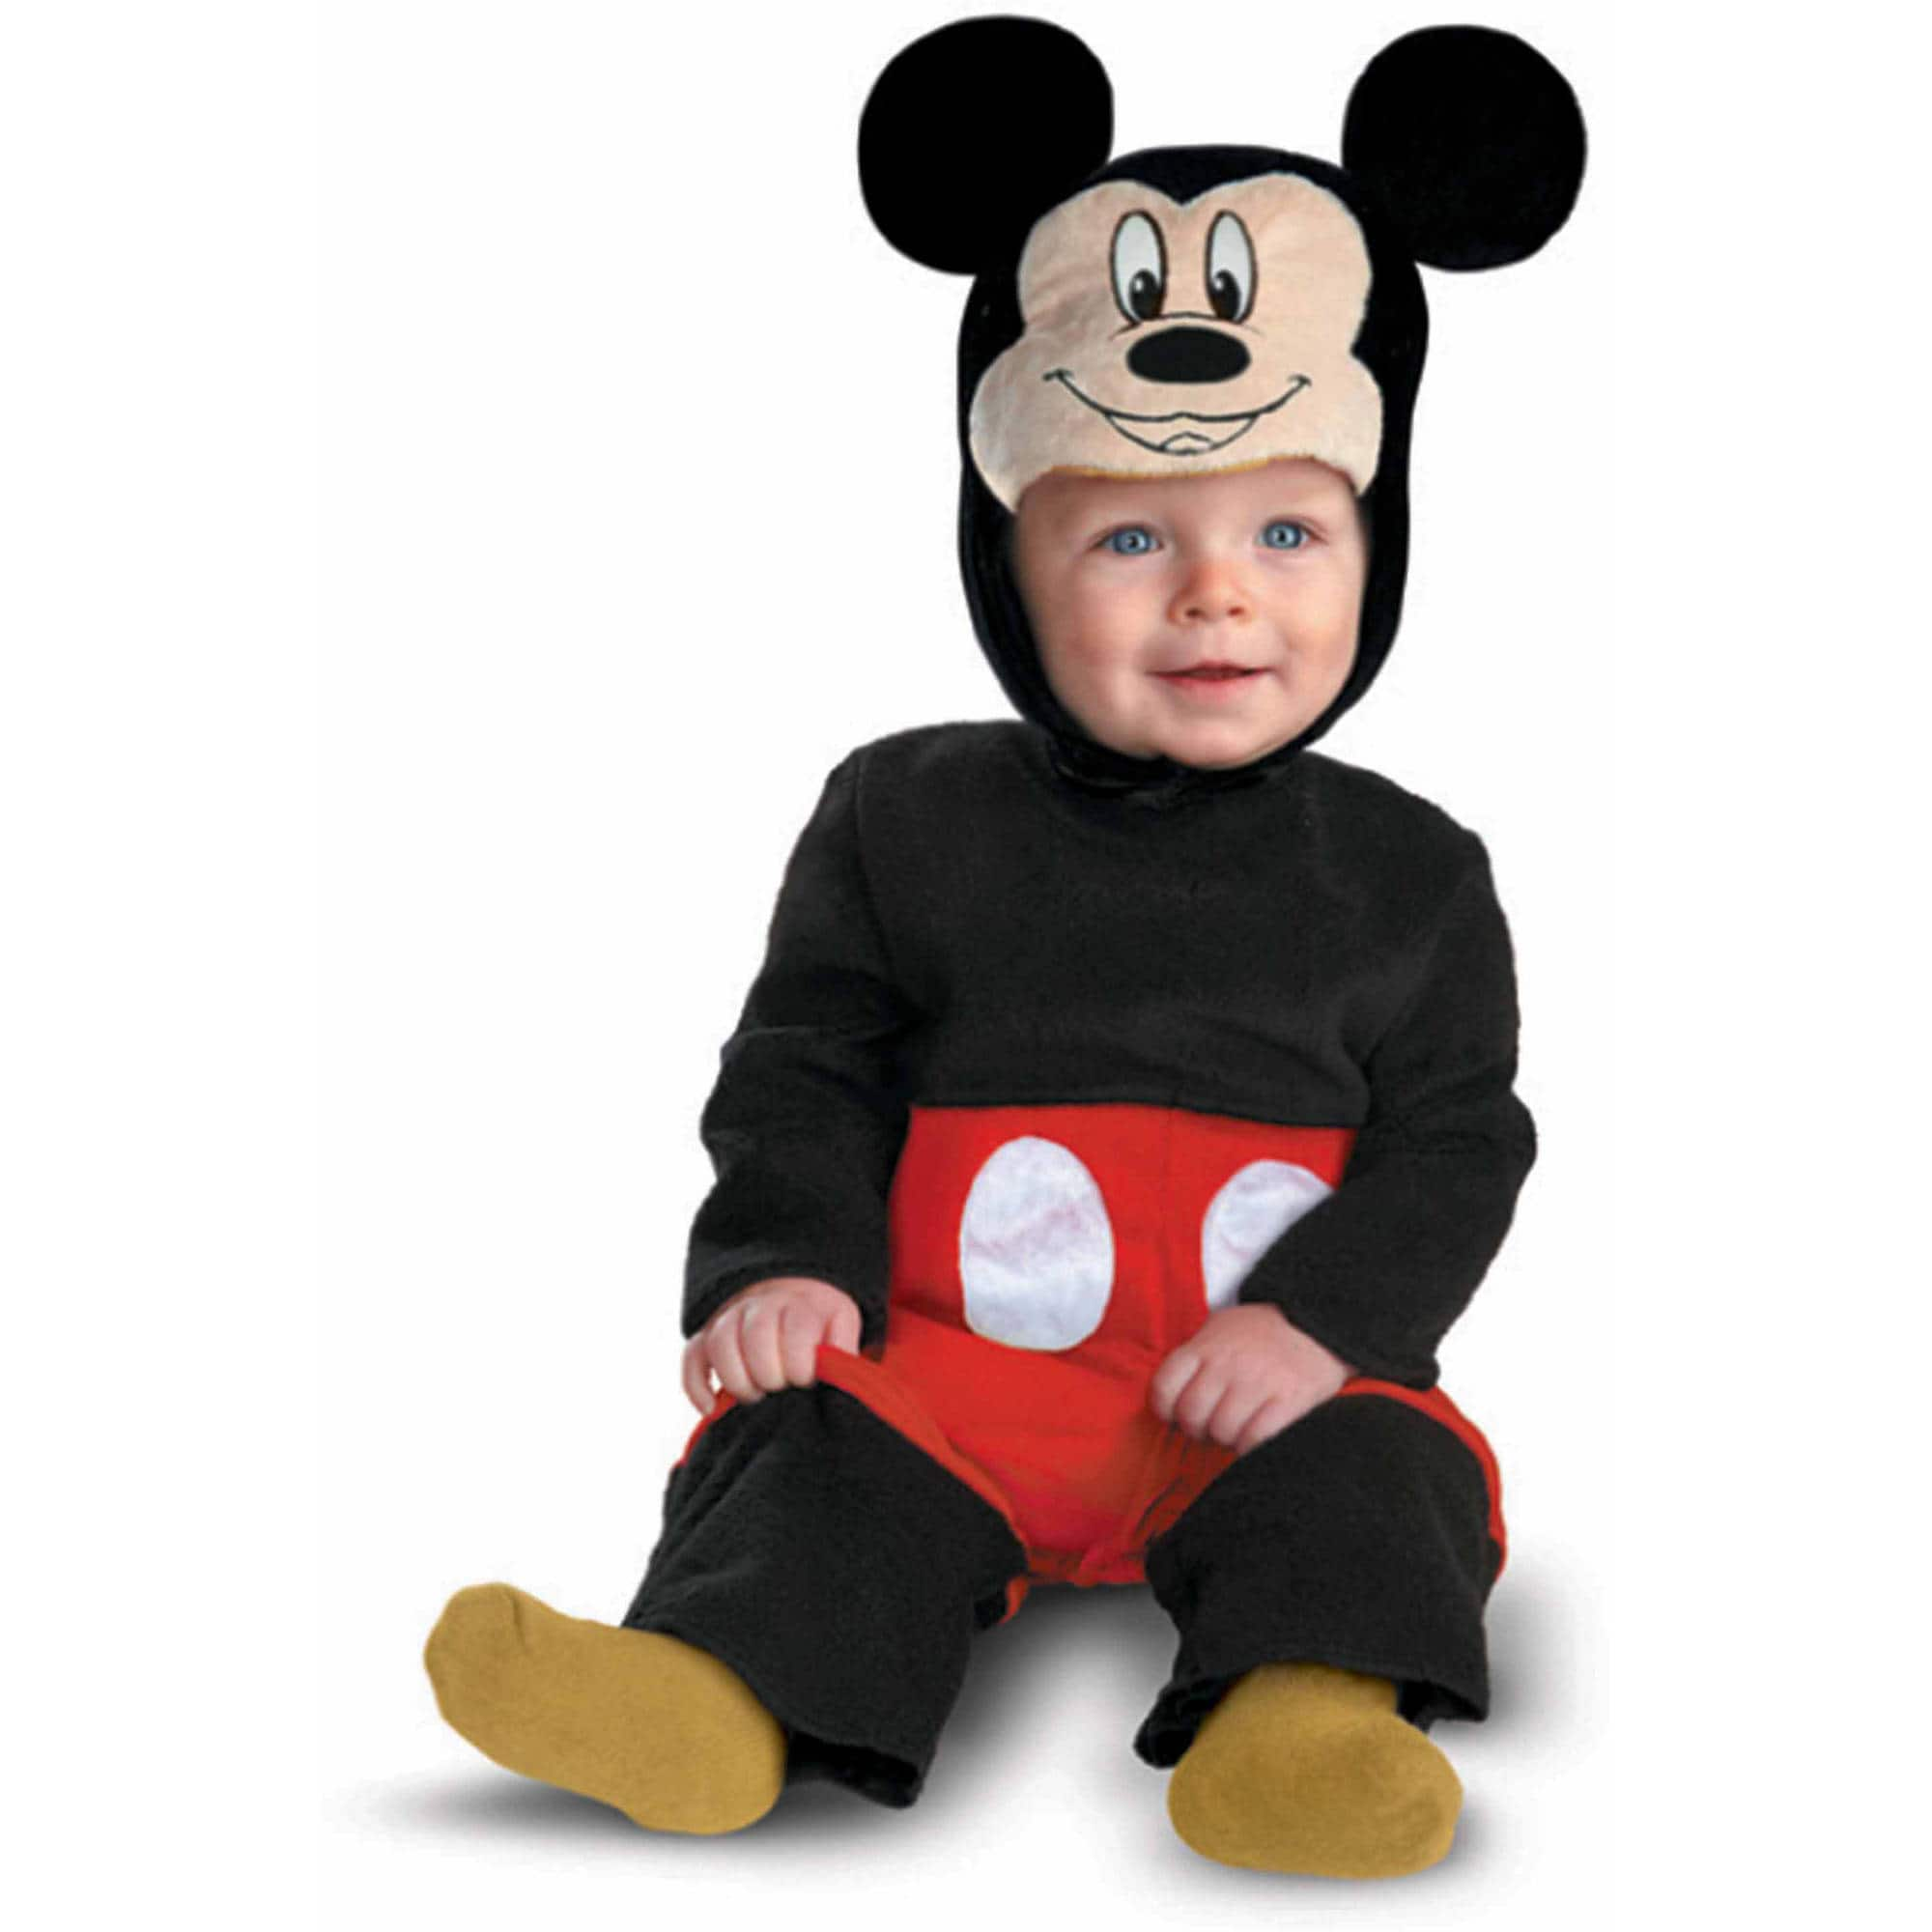 Disguise Disney Mickey Mouse Deluxe Infant Halloween Costume $14.99